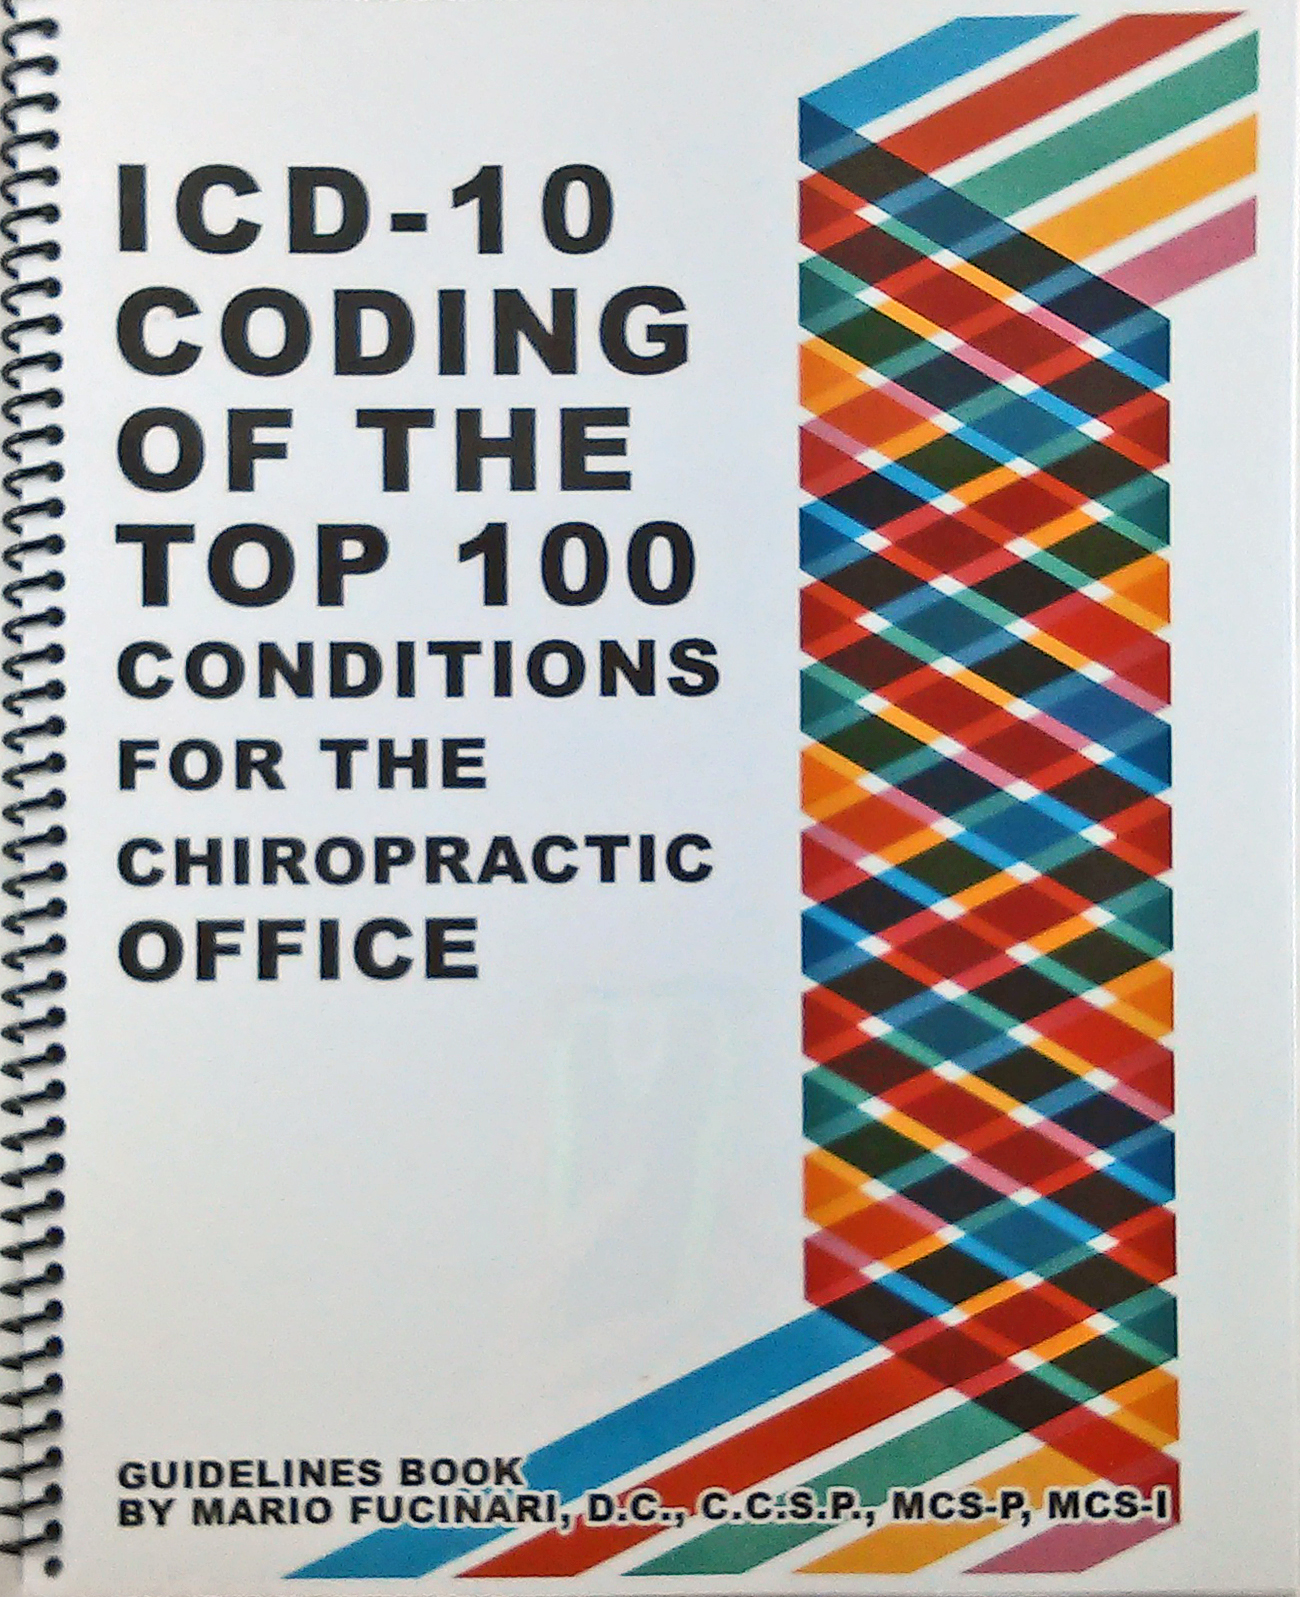 Icd 10 Coding Of The Top 100 Conditions For The